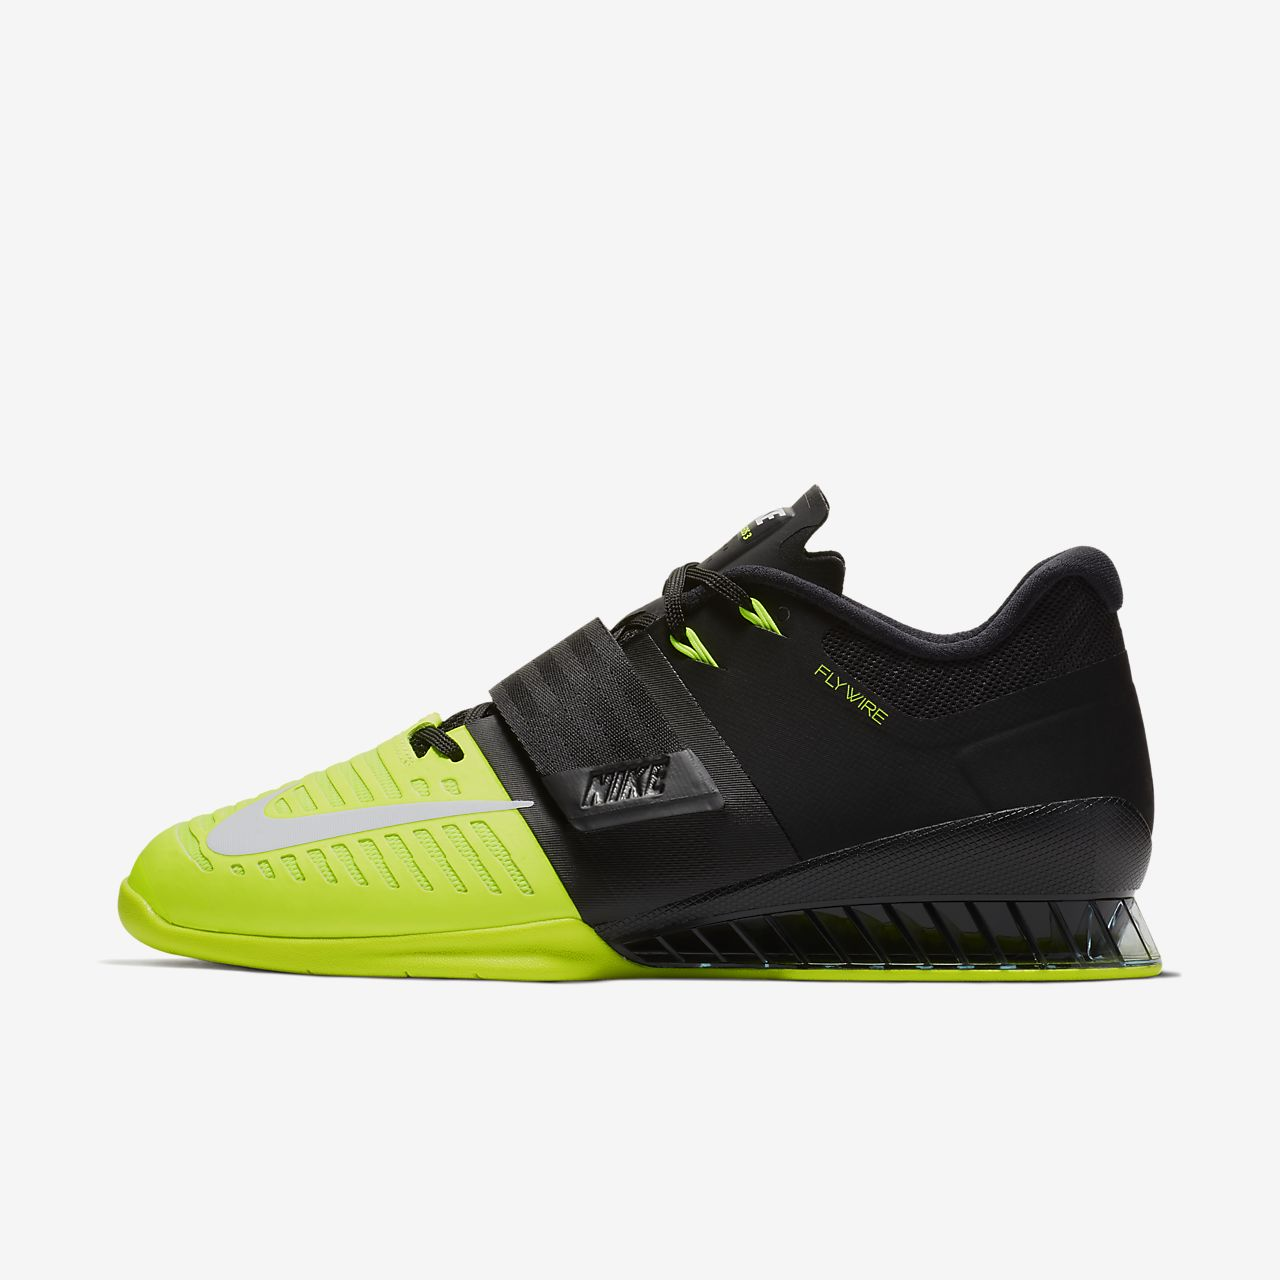 Chaussures - Bas-tops Et Baskets Spingle Déplacer W HlVMOaM